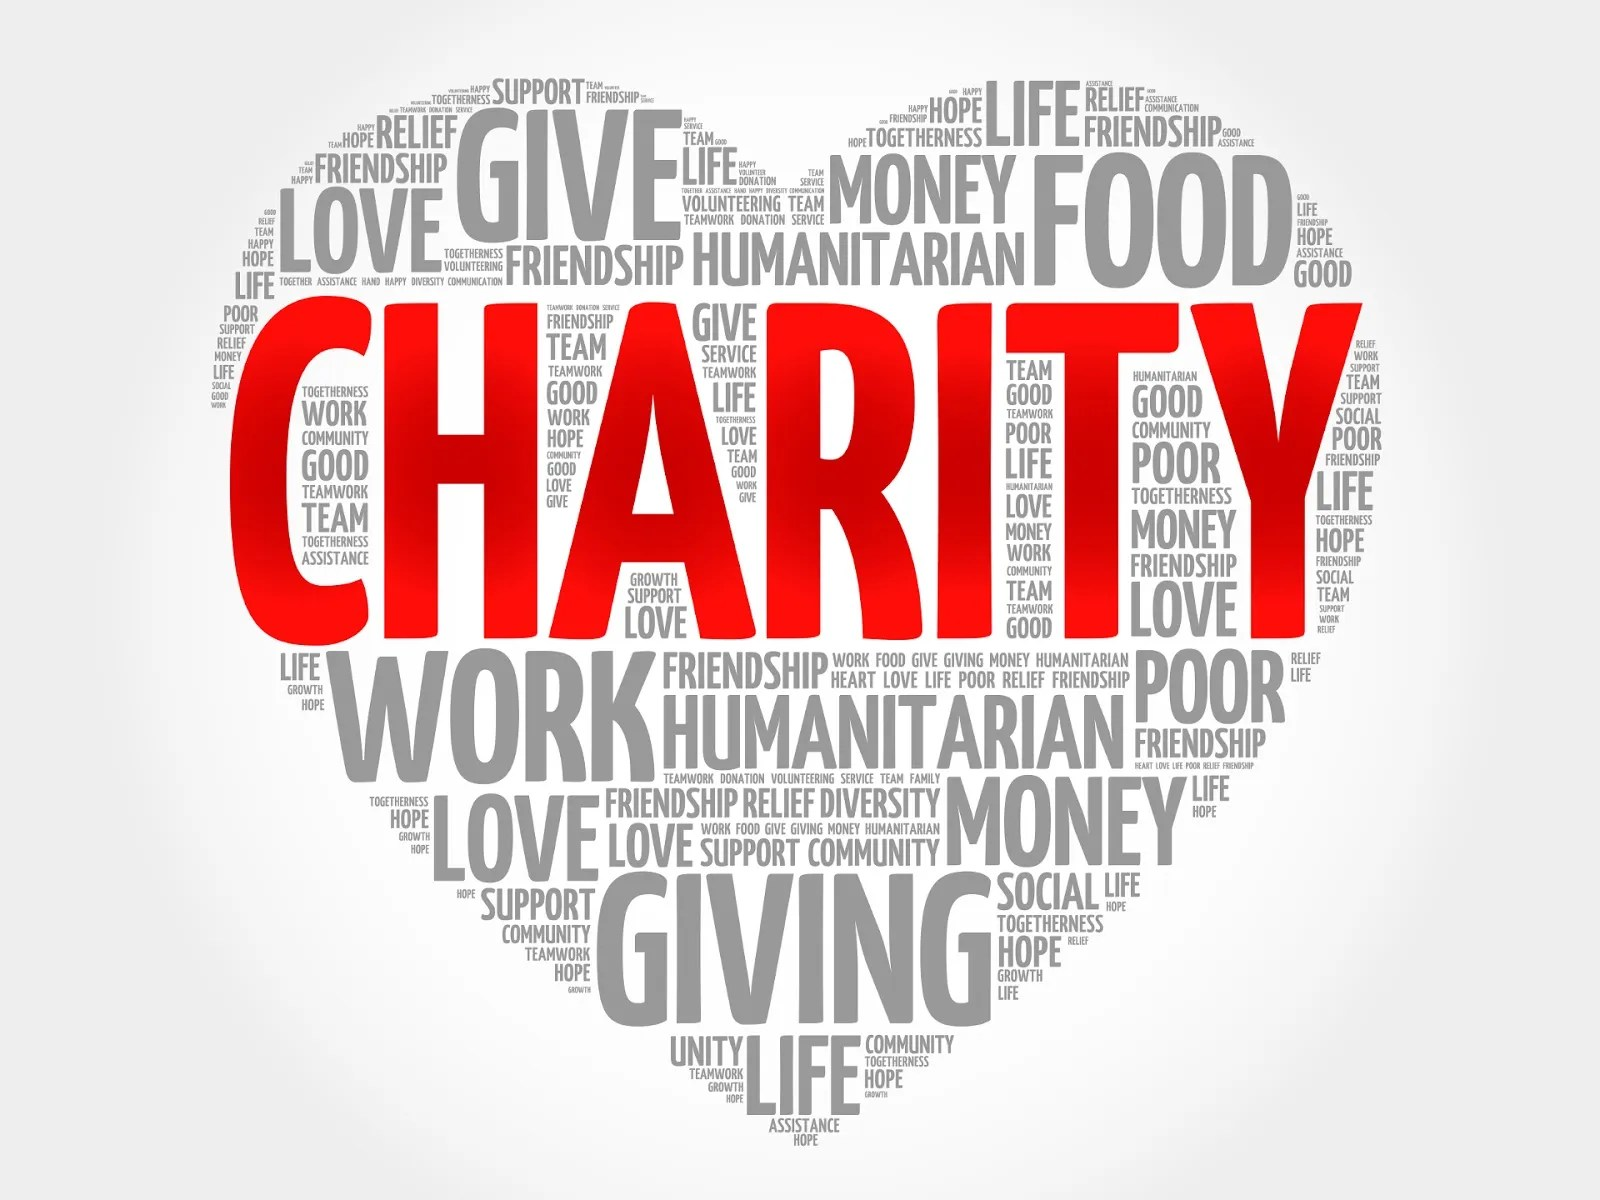 Charity & Well-Being